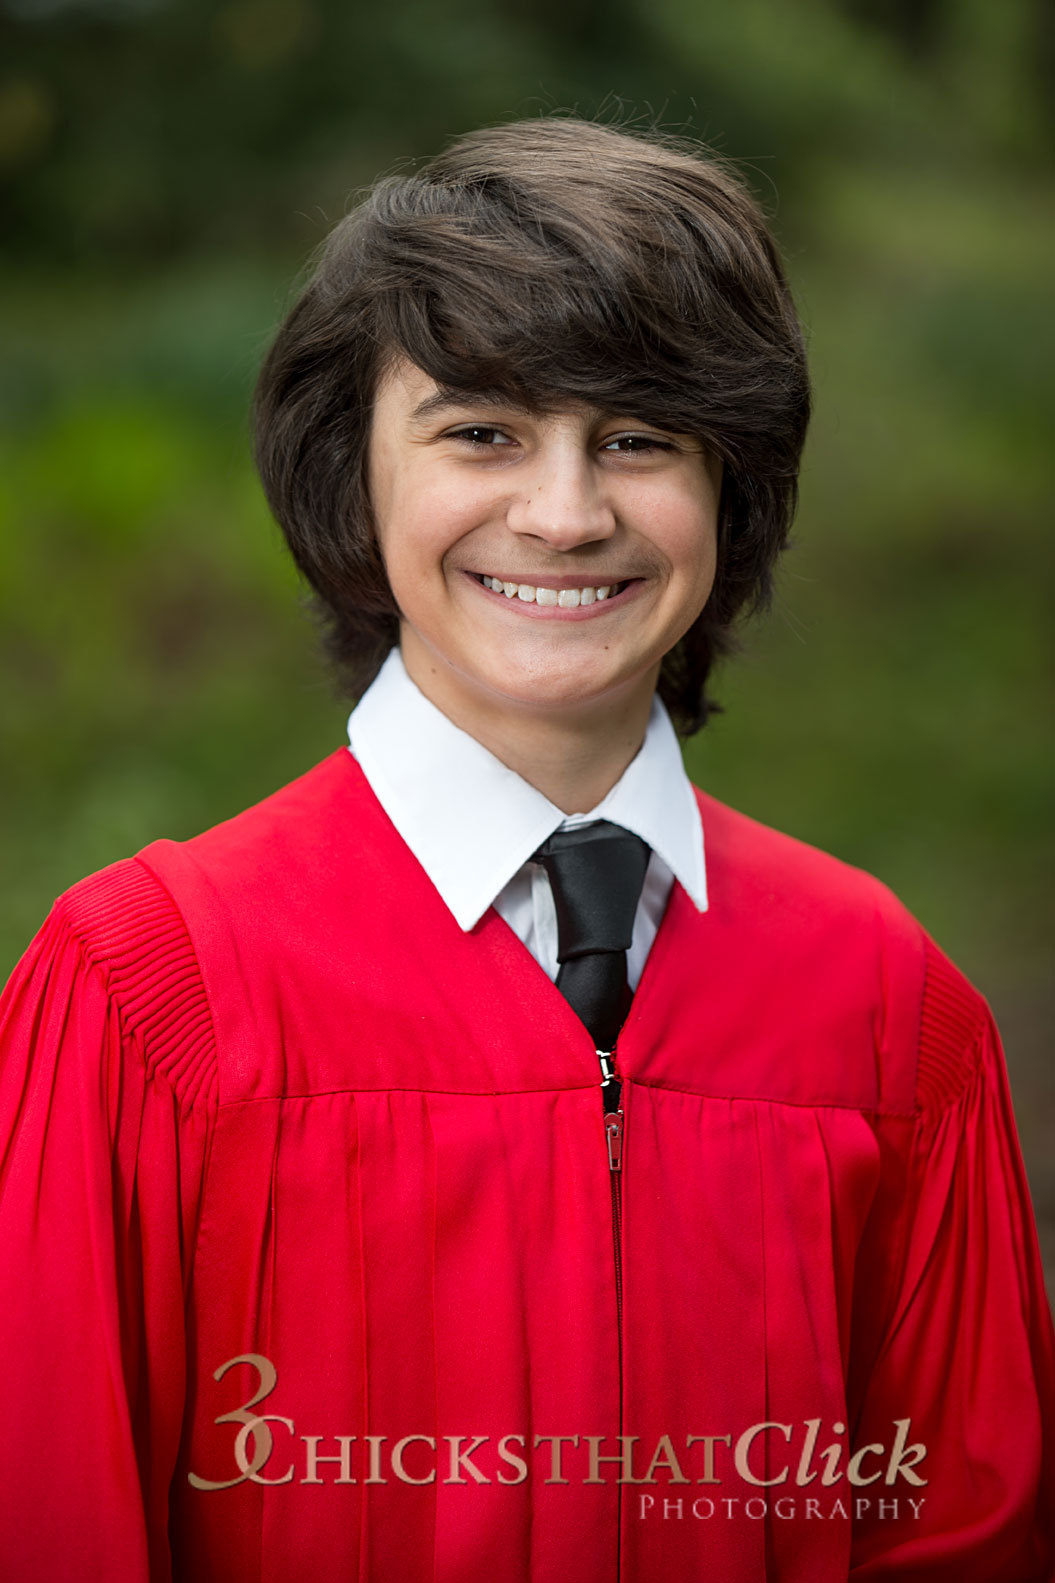 Photo of young man in red Confirmation gown